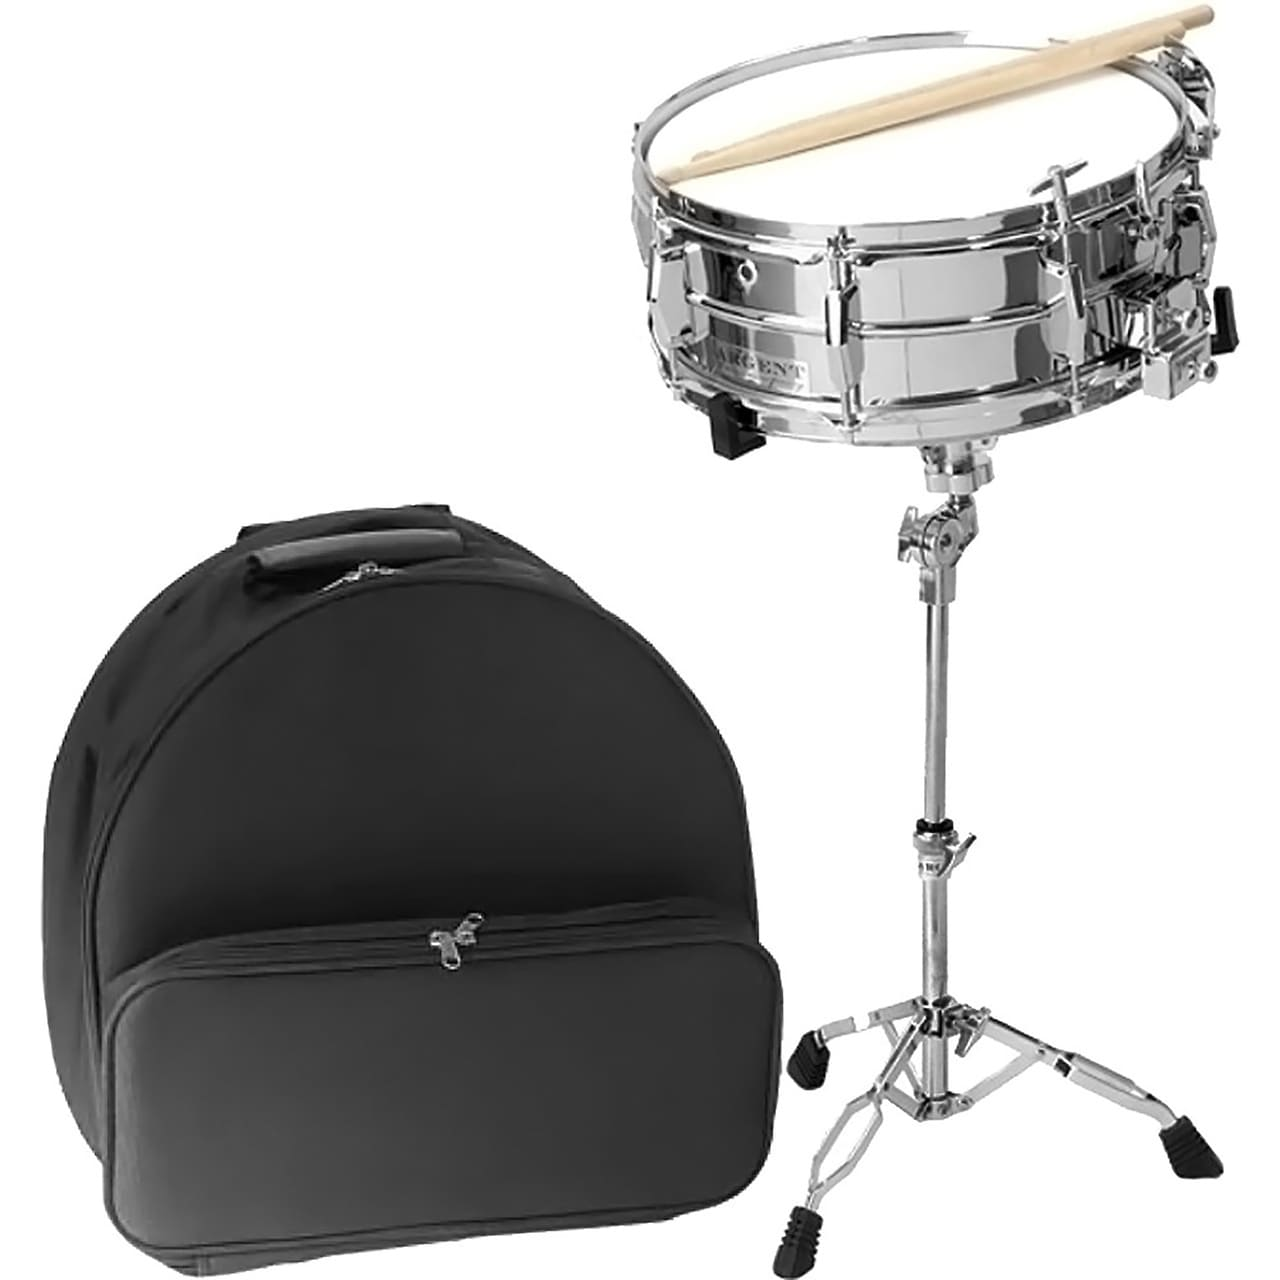 New Excel Percussion 8-Lug Deluxe Student Snare Drum Kit ...